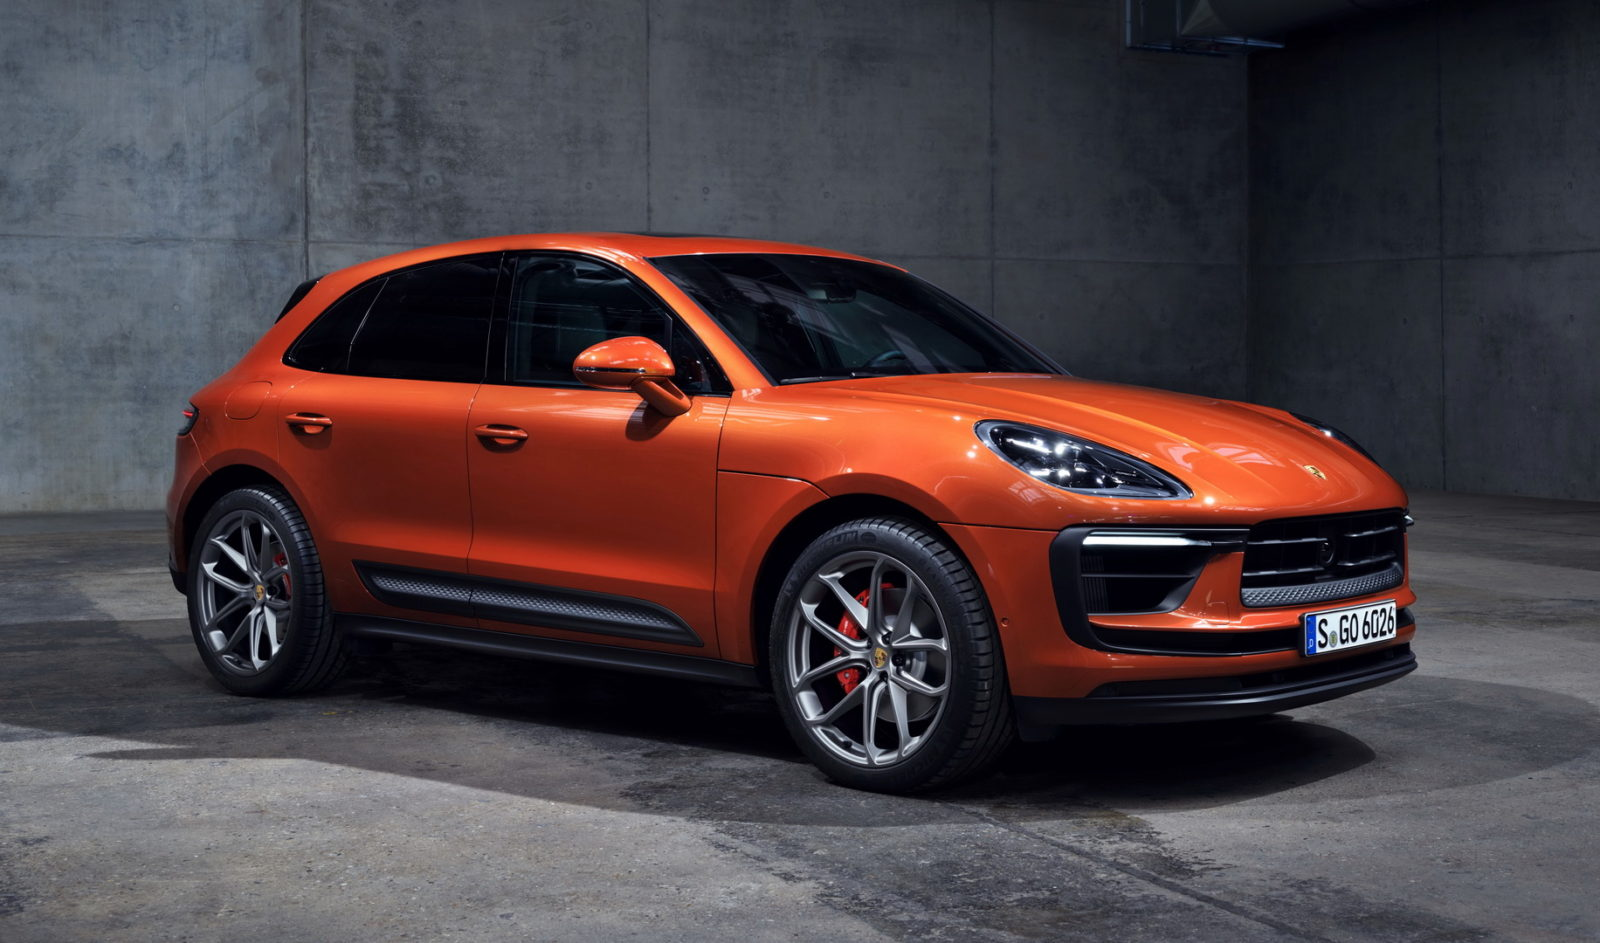 2022-porsche-macan-facelift-breaks-cover-with-sharper-looks-and-$54,900-tag